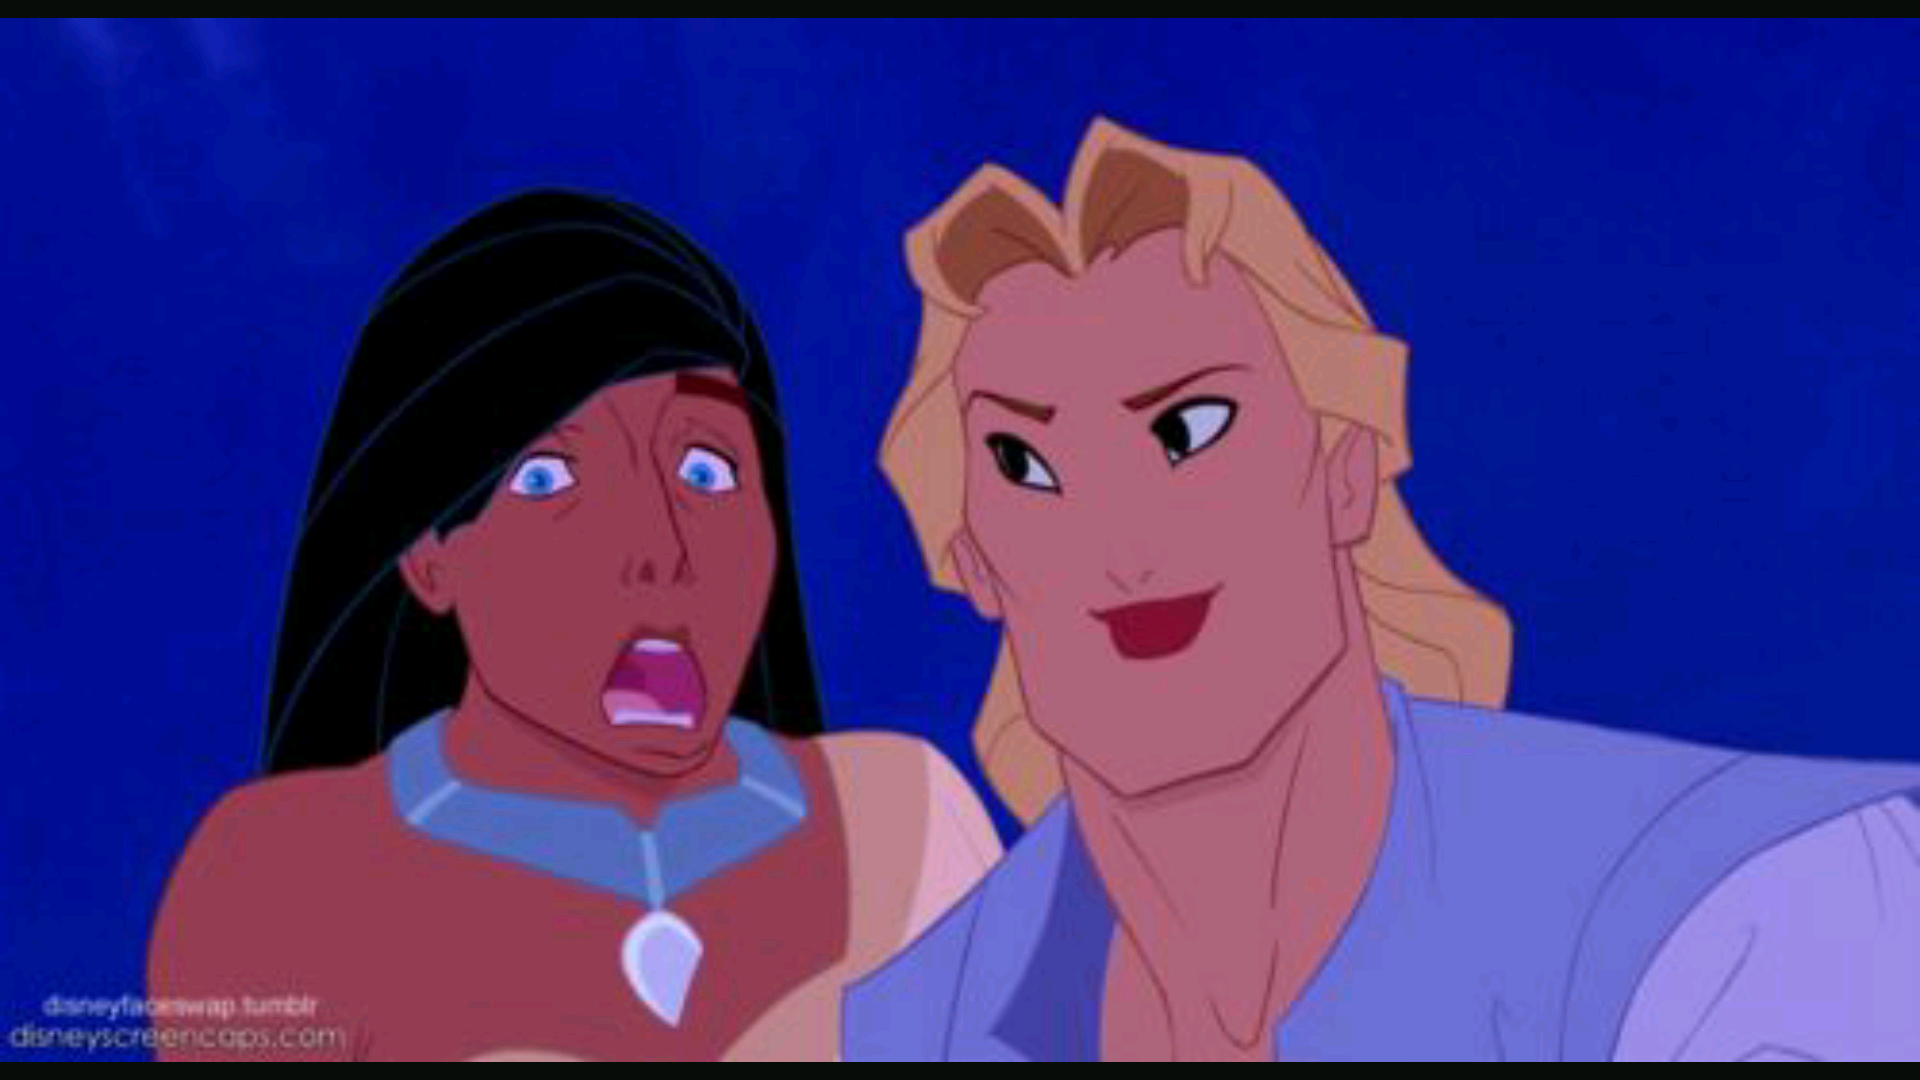 This Pocahontas and John Smith Swap